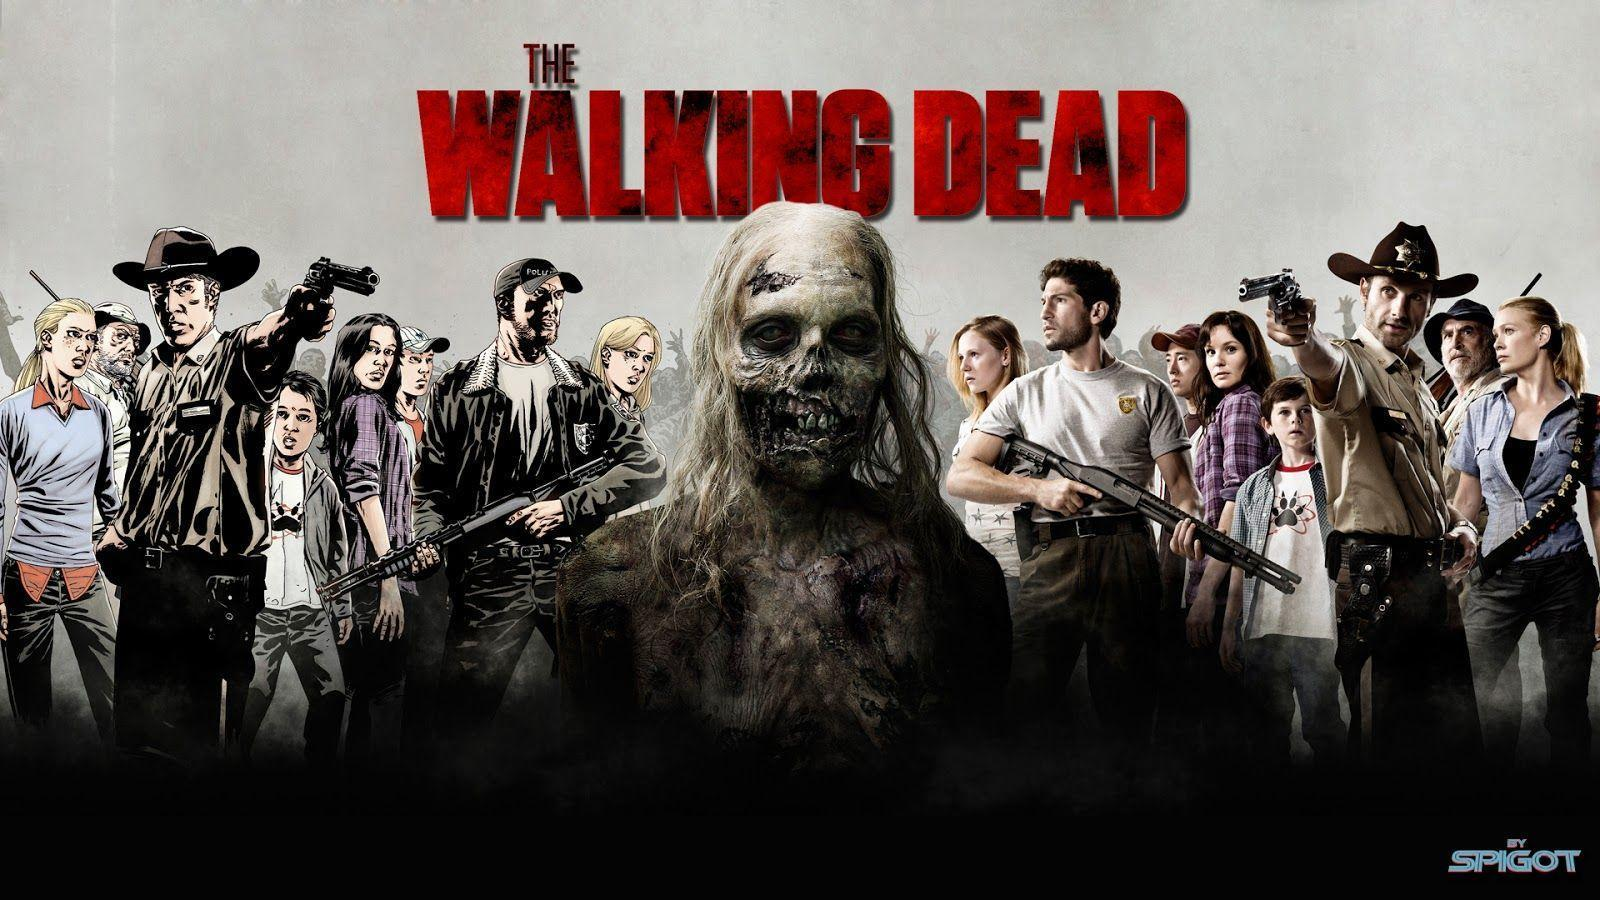 The Walking Dead 7 Wallpapers Wallpaper Cave